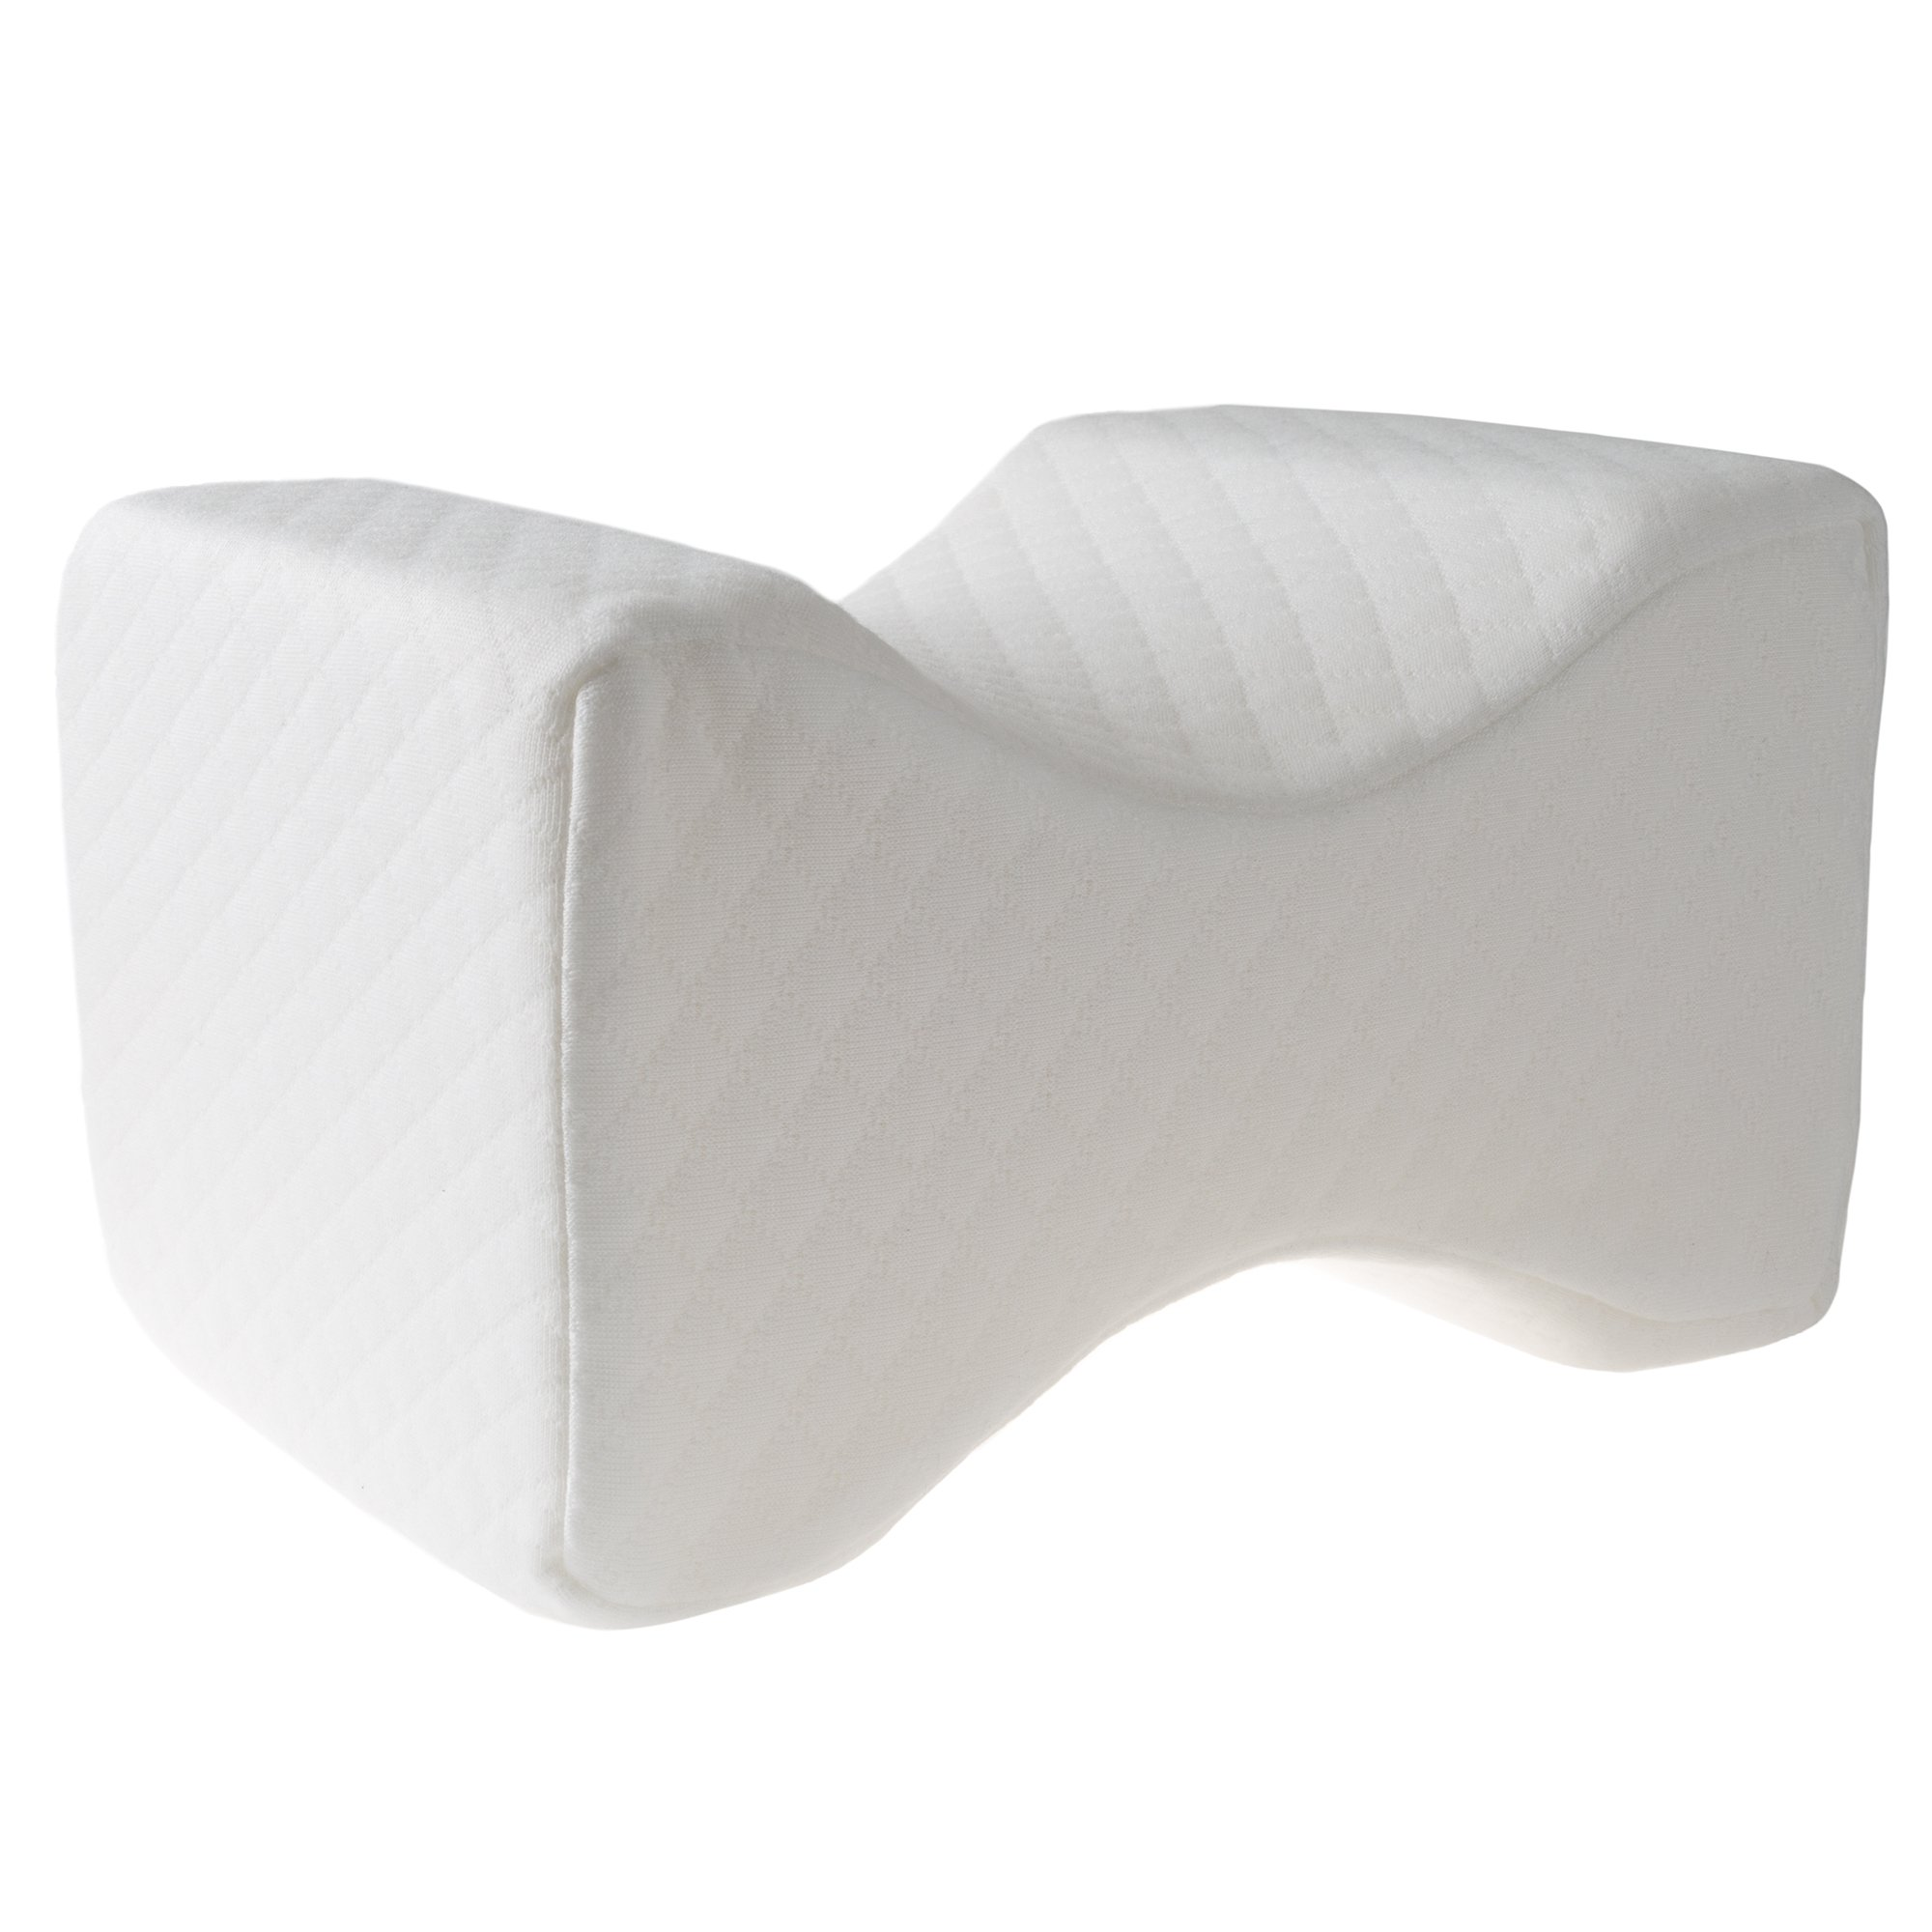 Foam Knee Pillow Spacer Cushion For Knee and Leg Pain, Lower Back Relief, Sleeping, And Side Sleepers By Bluestone